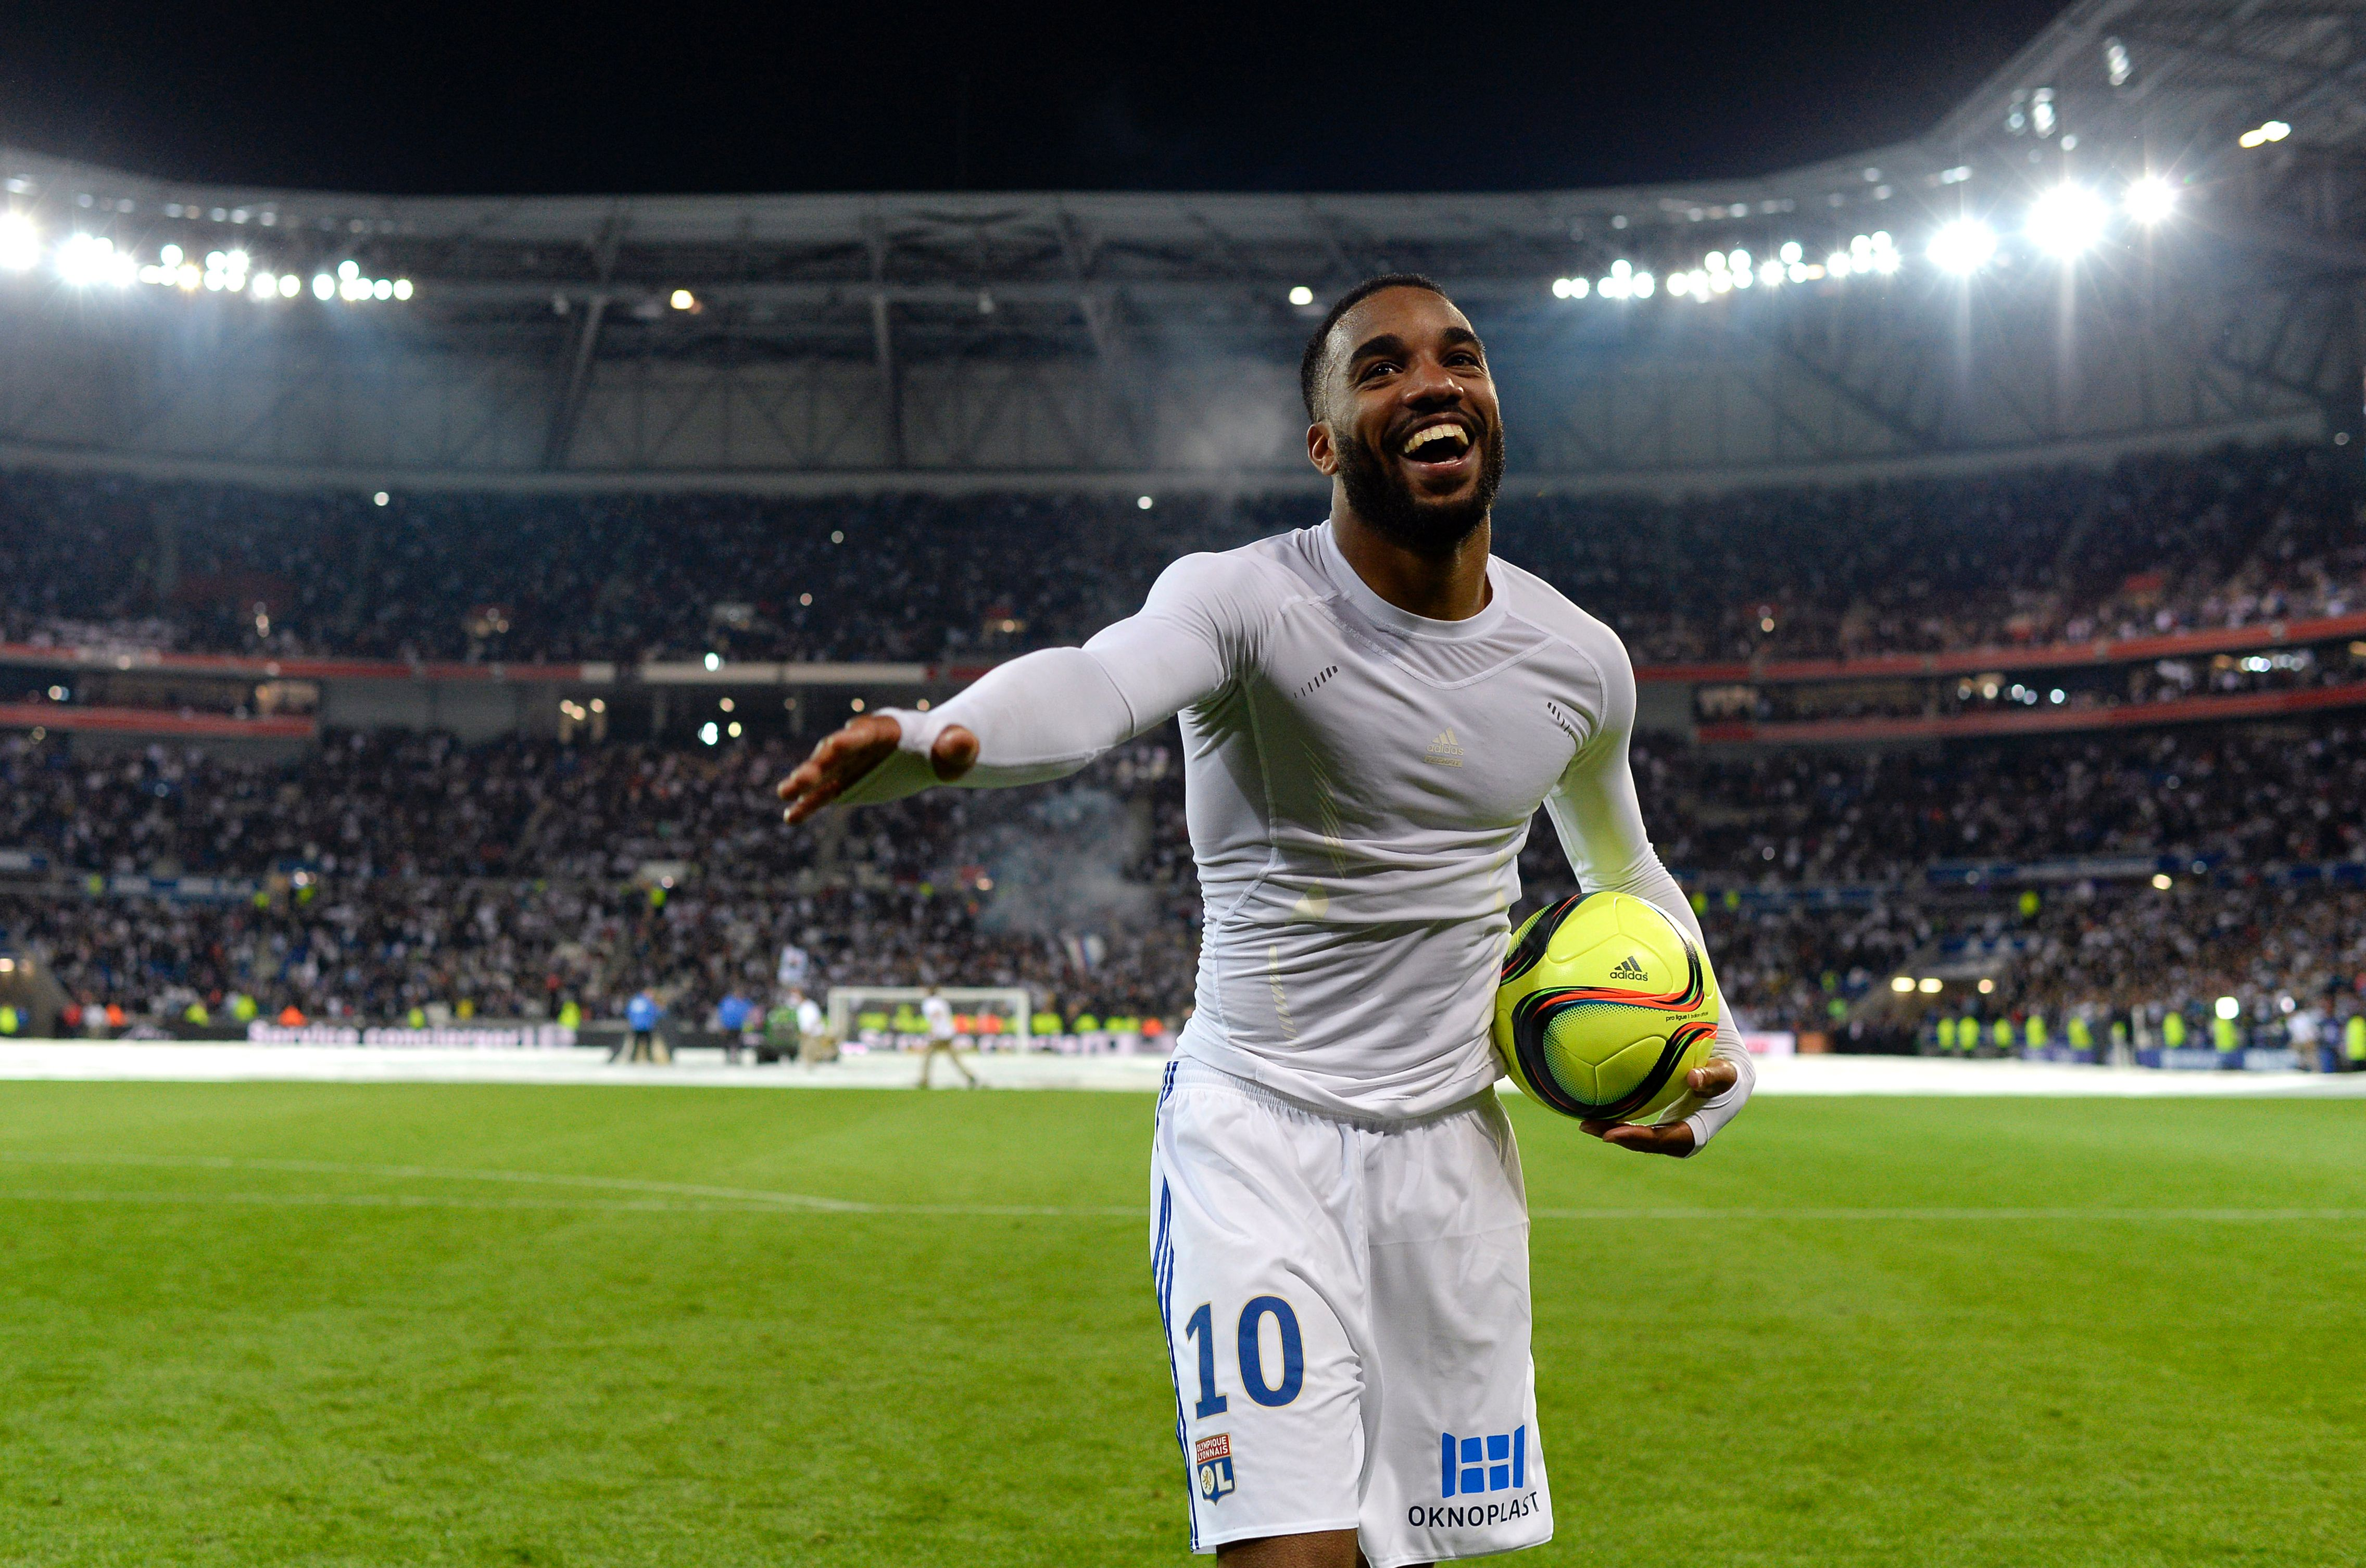 Lyon's French forward Alexandre Lacazette celebrates after the French L1 football match between Lyon (OL) and Monaco (ASM) at the Parc de l'Olympique Lyonnais in Decines-Charpieu, central eastern France, on May 7, 2016. Lyon won the match 6-1. / AFP / ROMAIN LAFABREGUE        (Photo credit should read ROMAIN LAFABREGUE/AFP/Getty Images)